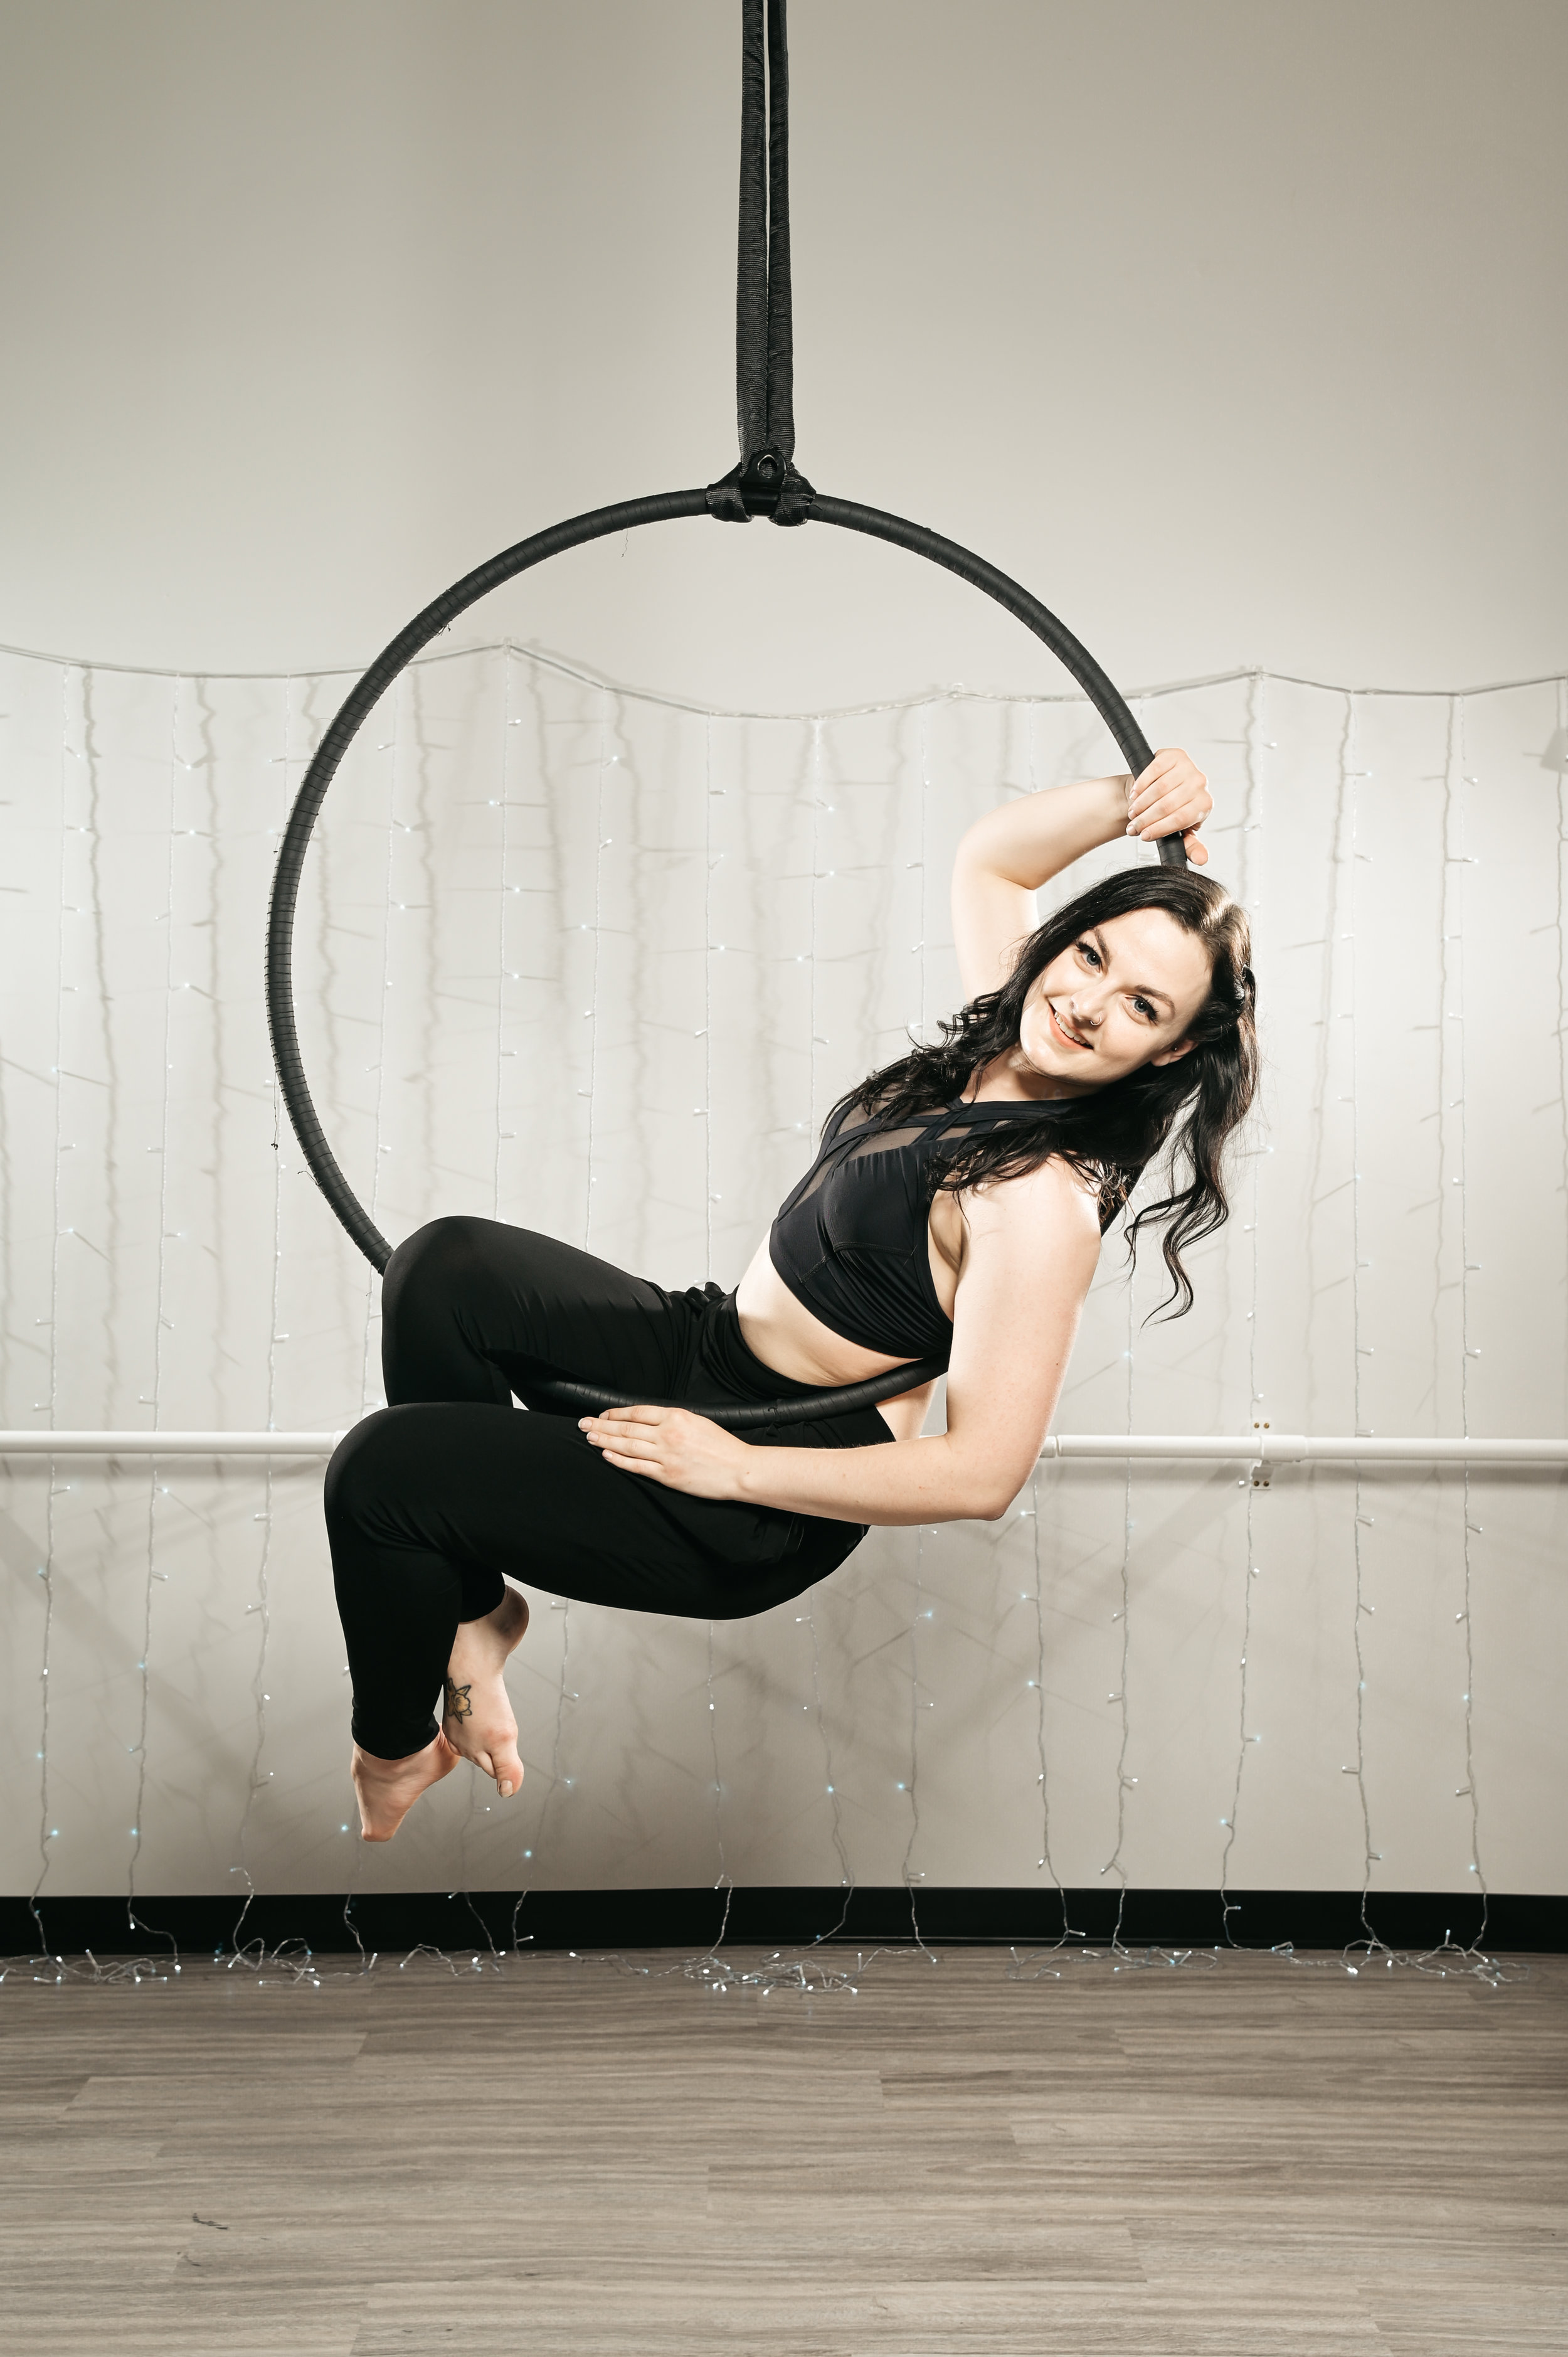 BEGINNER AERIAL HOOP - Our Beginner Aerial Hoop Six Week Enrollment terms are split into two classes. Beginner 1 is designed to be for individuals who are new to fitness programming. Beginner 2 is meant for individuals who are currently active in fitness programming but are new to Aerial Hoop. You have the choice to select one or the other to start. We have developed this programming to allow participants to learn at their own desired pace.